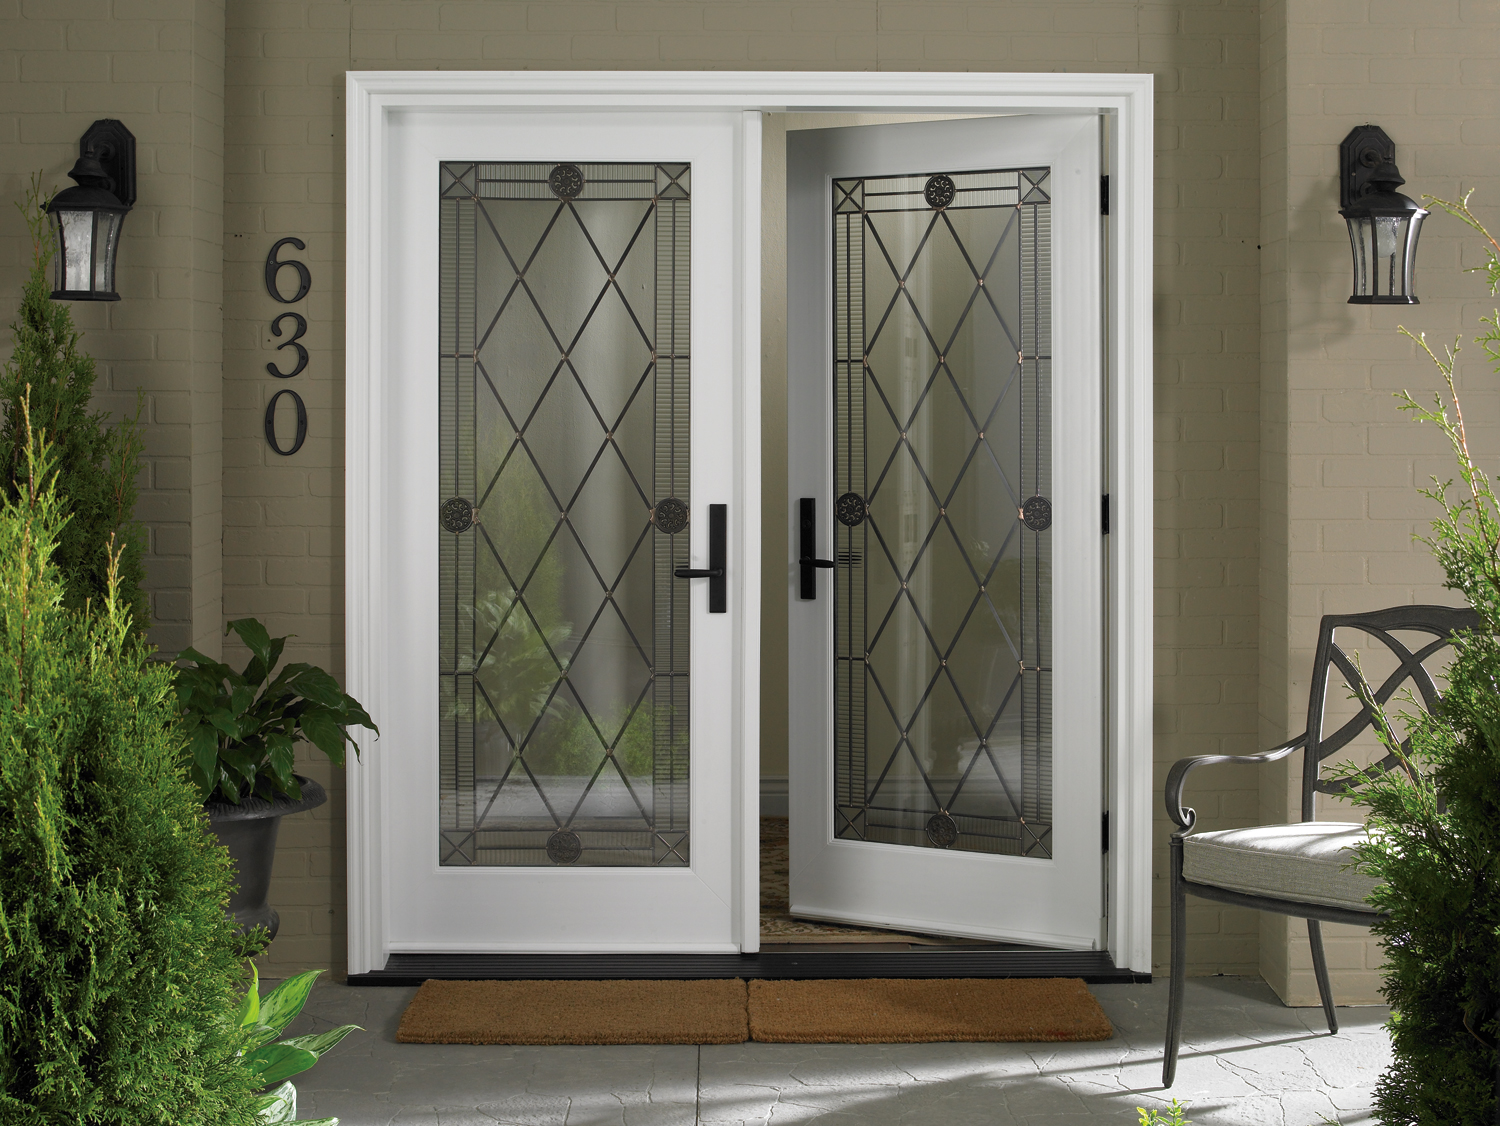 Entry Door Options Toronto Stained Glass Locks Heritage Home Design